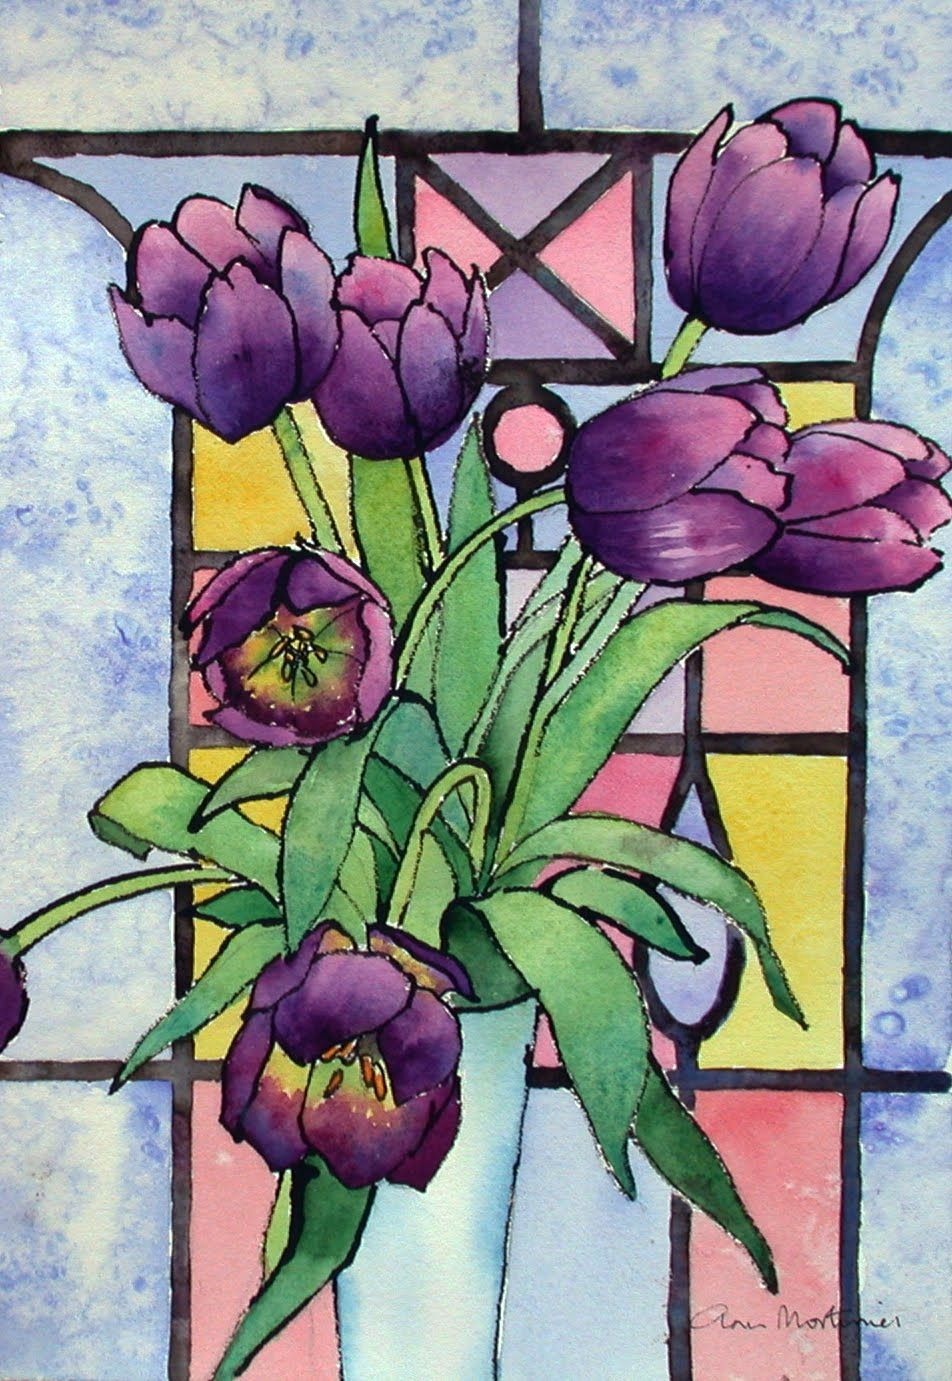 Glass window design - Painting Blog Tulips And A Stained Glass Window With Paint Daubs Glass Painting Ideas Pinterest Watercolors Stains And Home